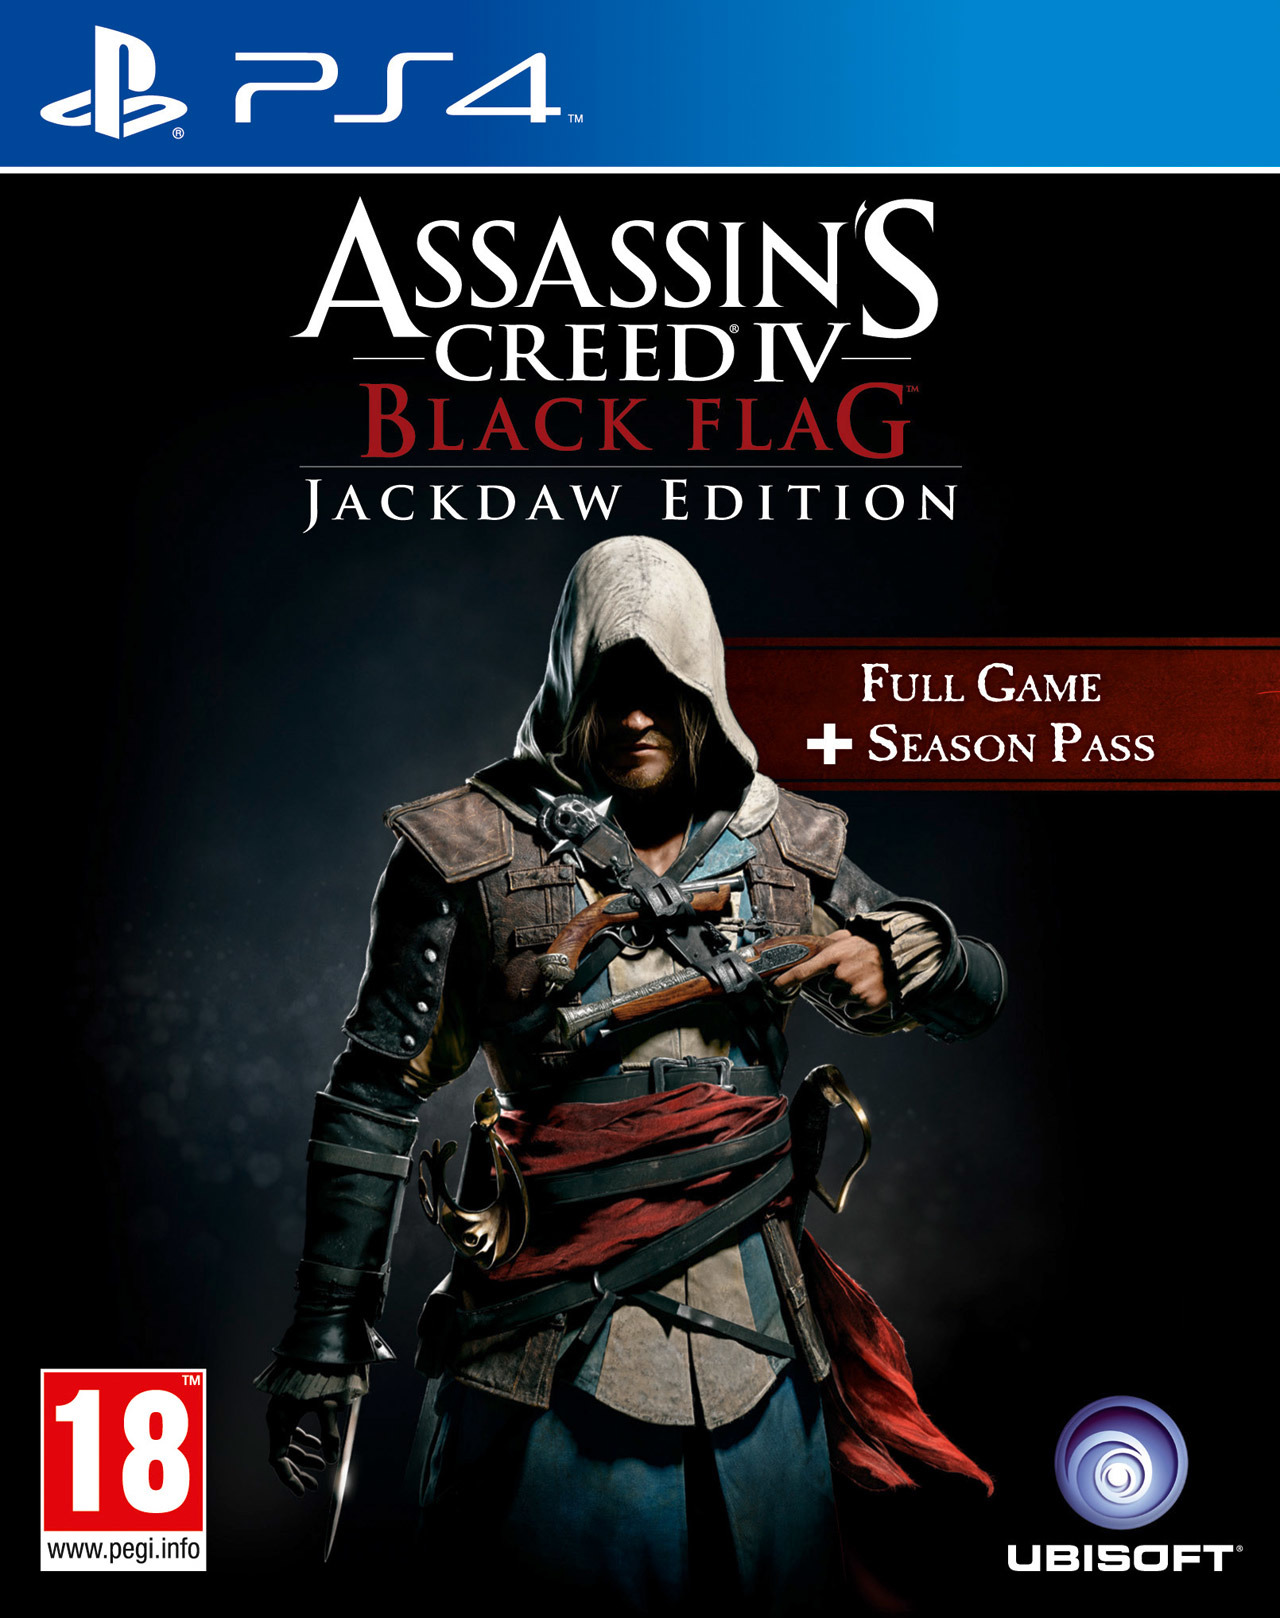 Assassins Creed 4 (IV): Black Flag (Чёрный Флаг) Jackdaw Edition (Рус)